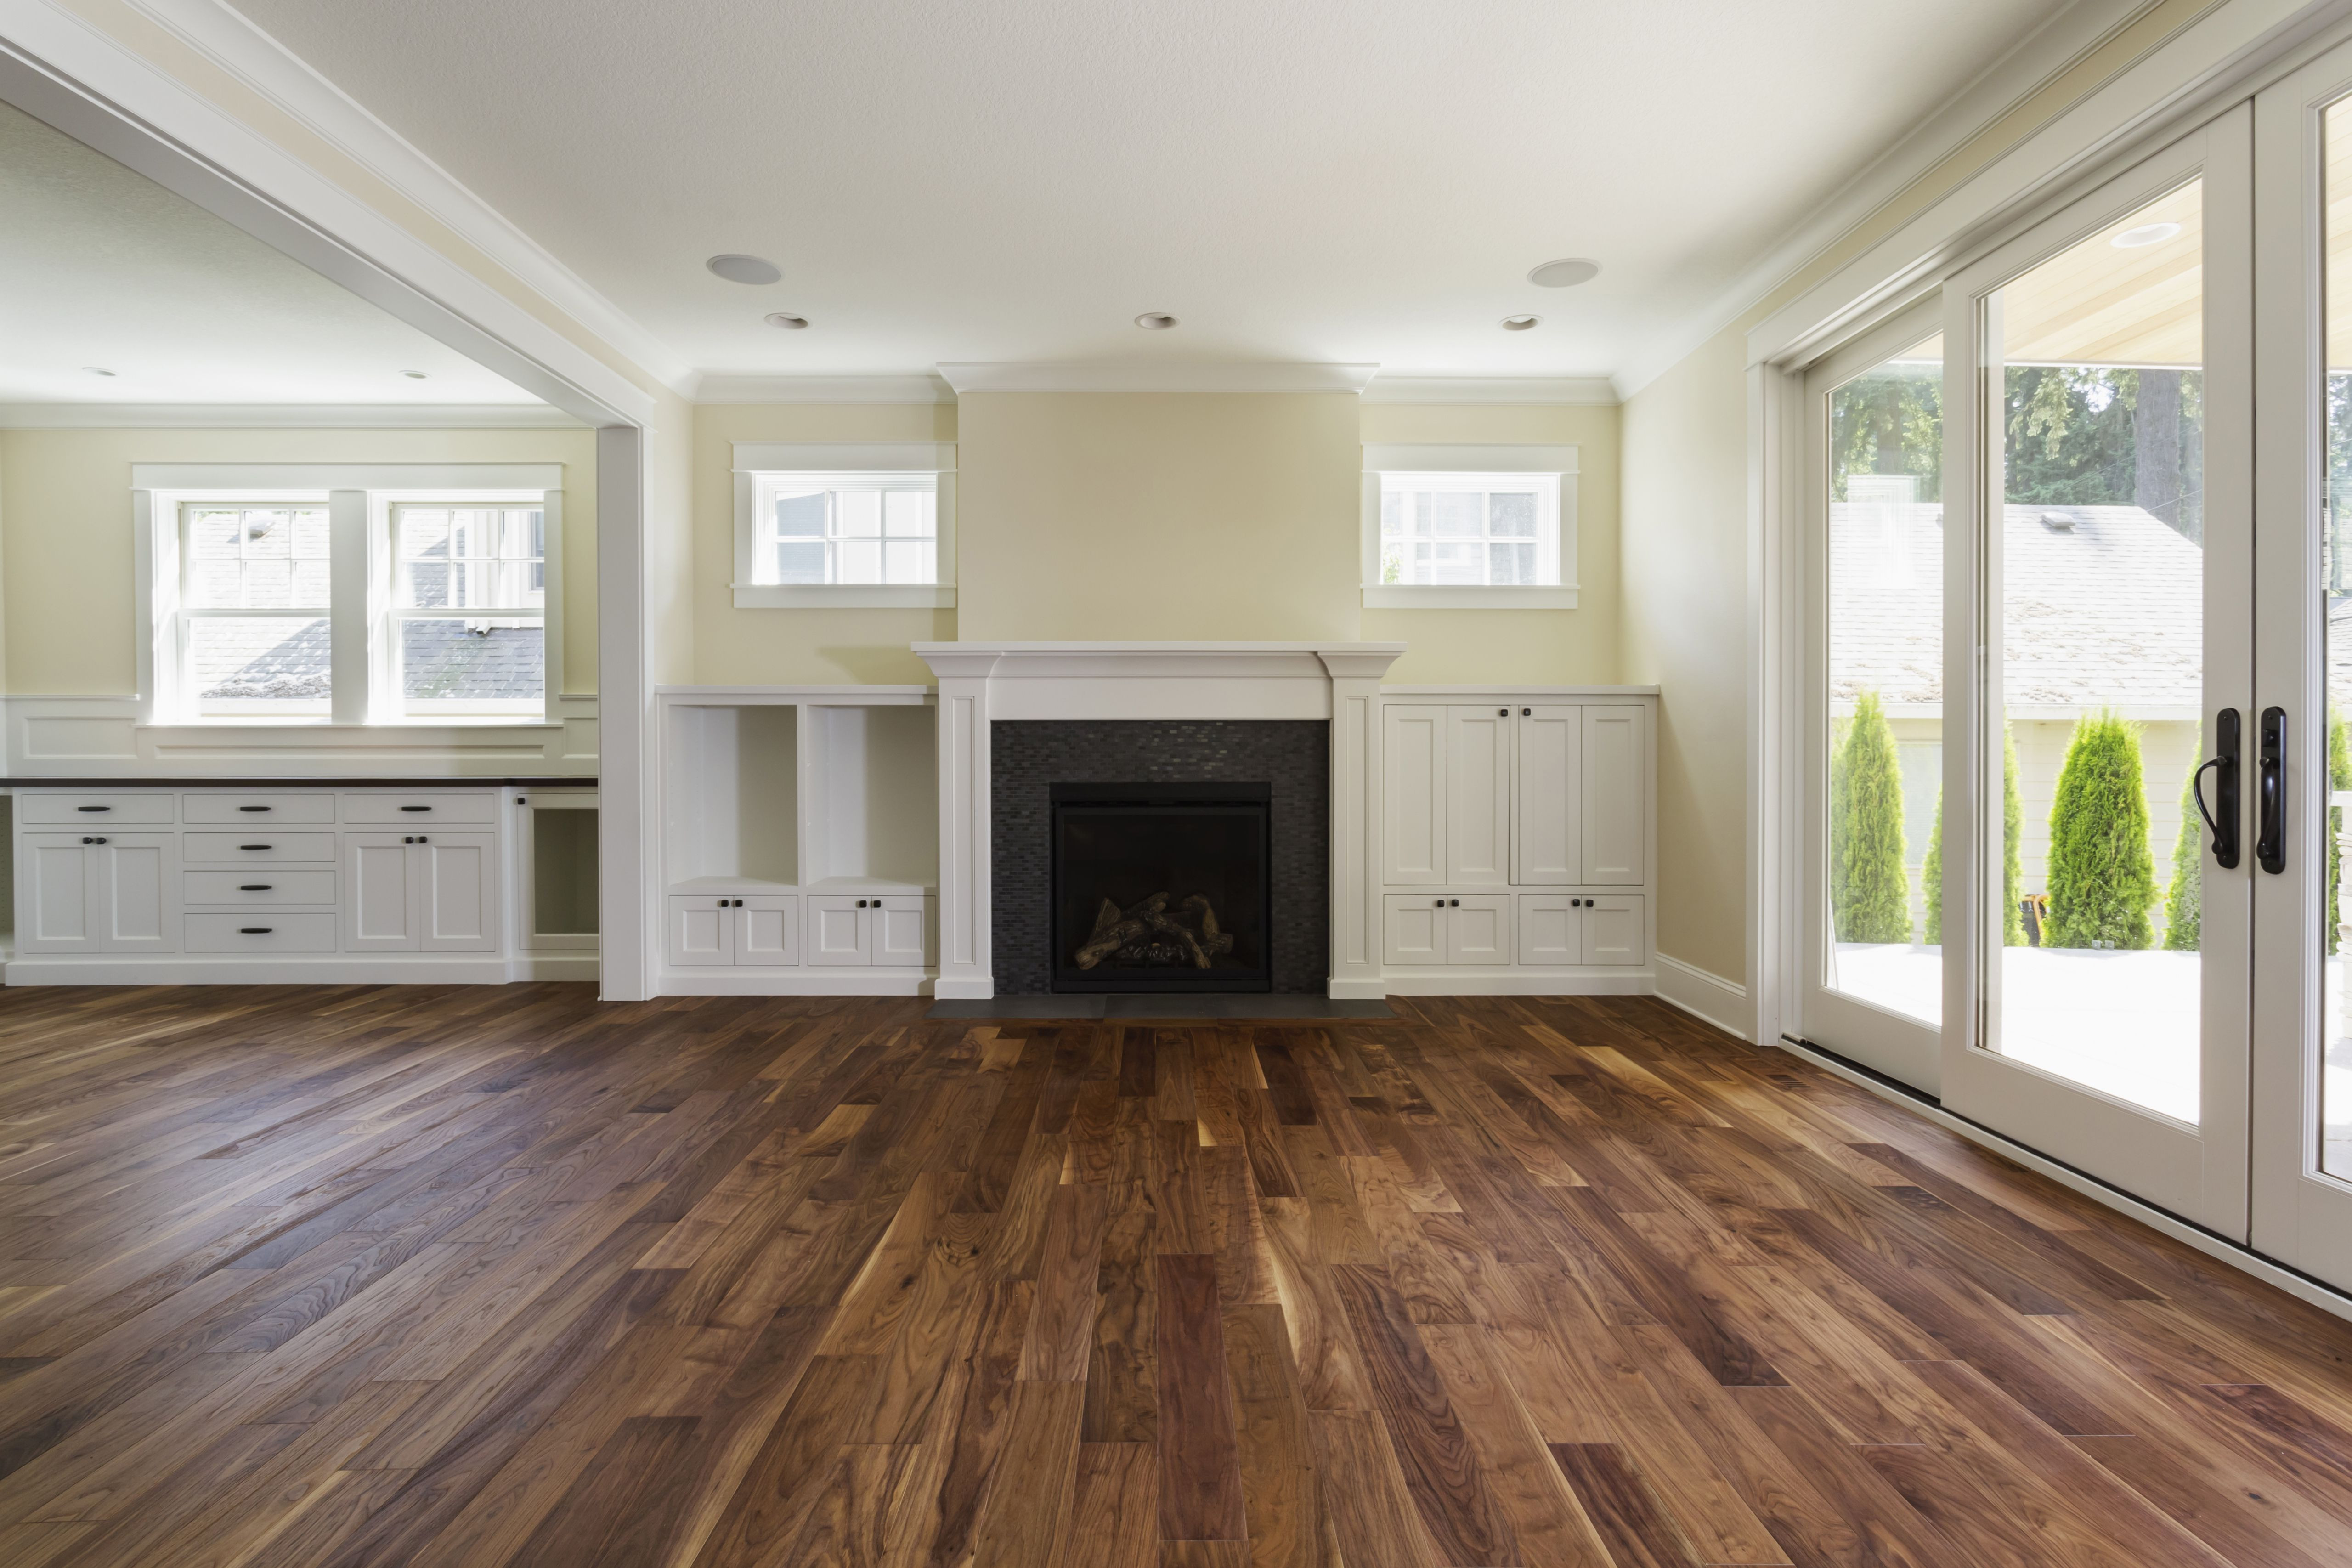 white oak hardwood flooring colors of the pros and cons of prefinished hardwood flooring intended for fireplace and built in shelves in living room 482143011 57bef8e33df78cc16e035397